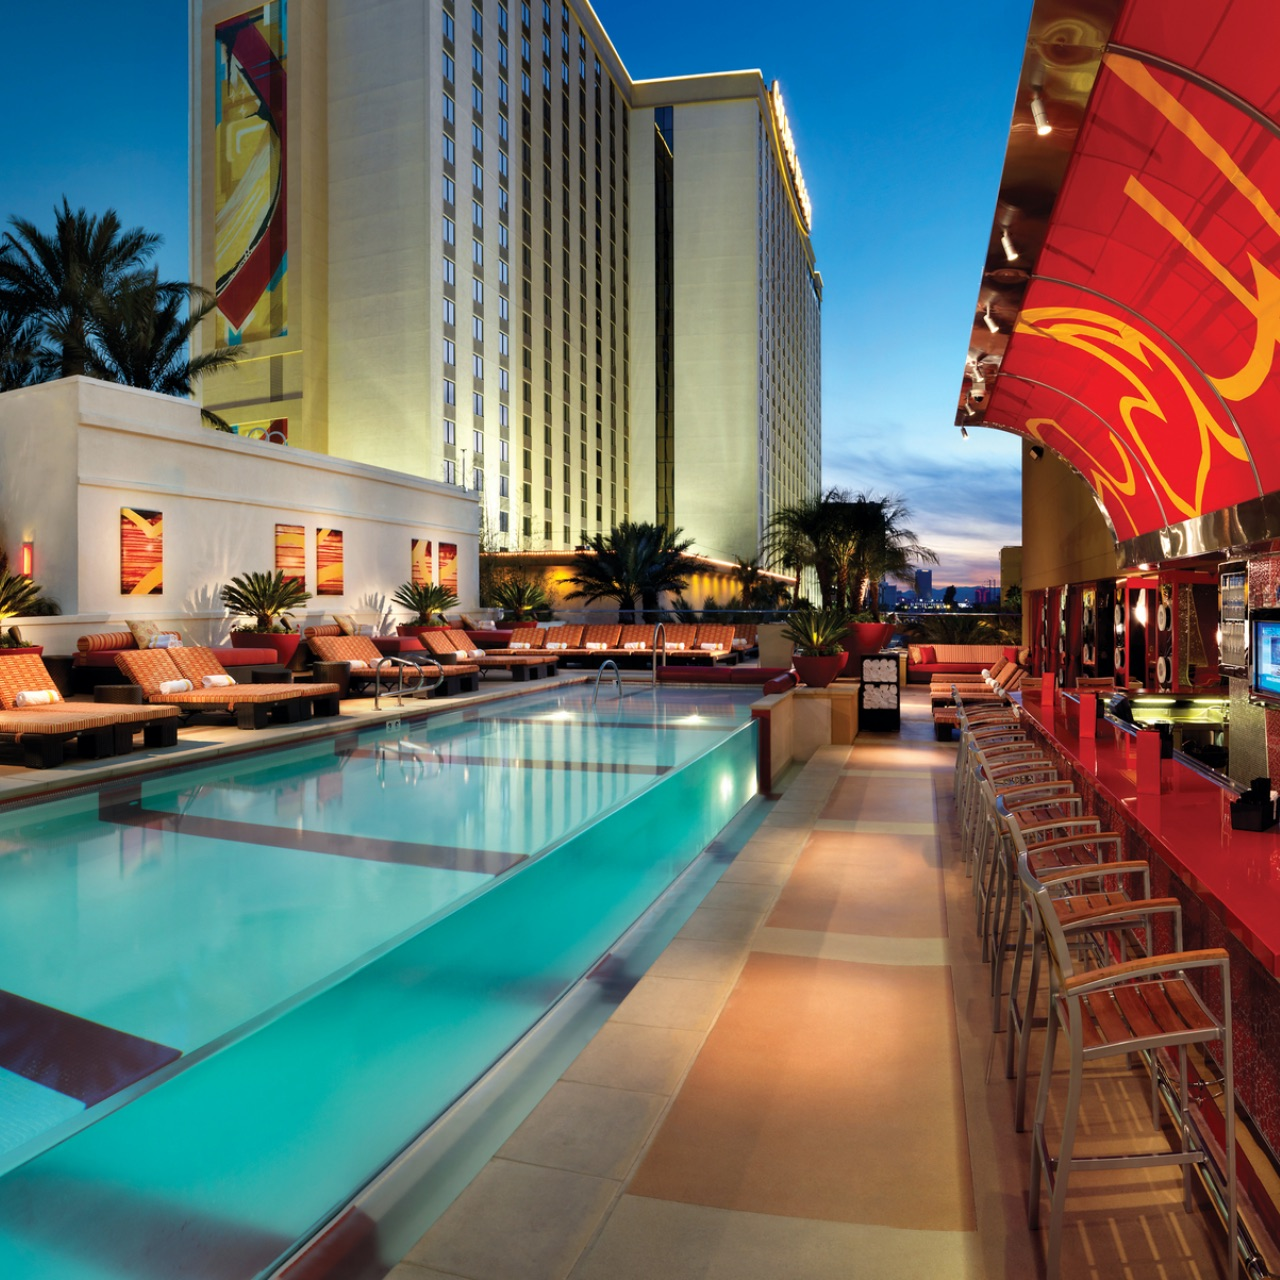 The Hideout - 21+ Pool & Bar